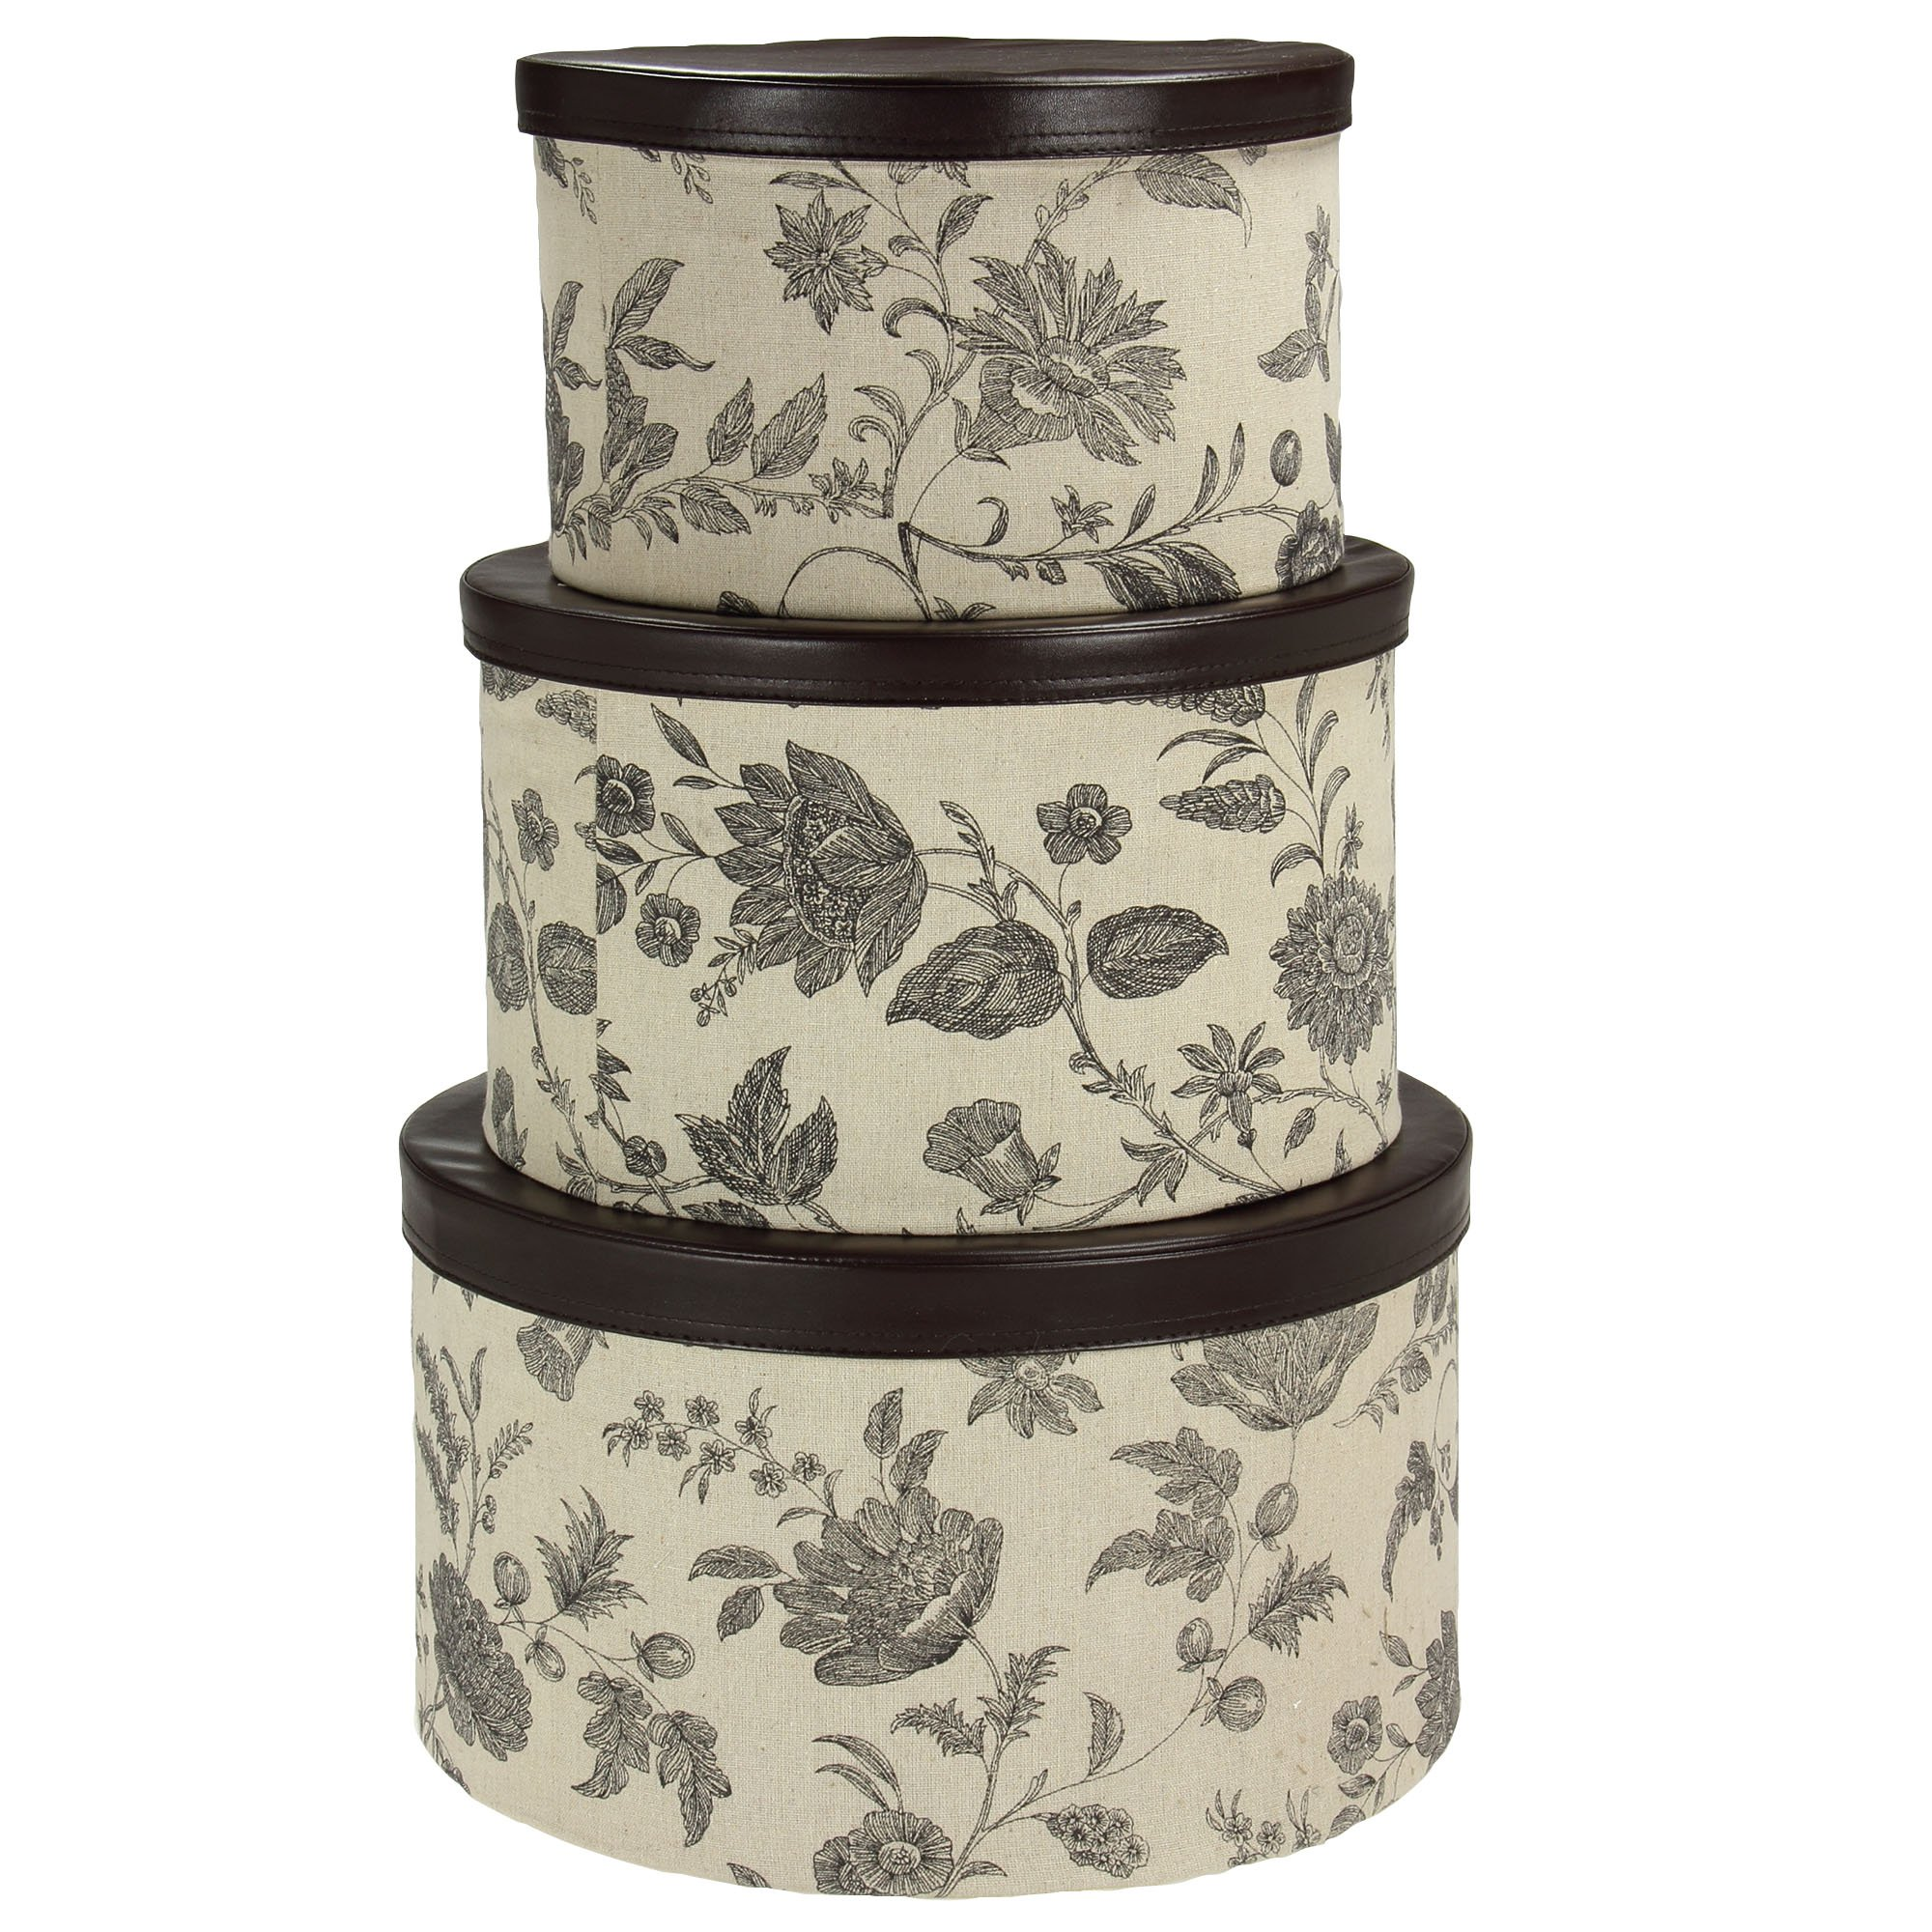 Household Essentials 3-Piece Hat Box Set with Faux Leather Lids, Floral Pattern by Household Essentials